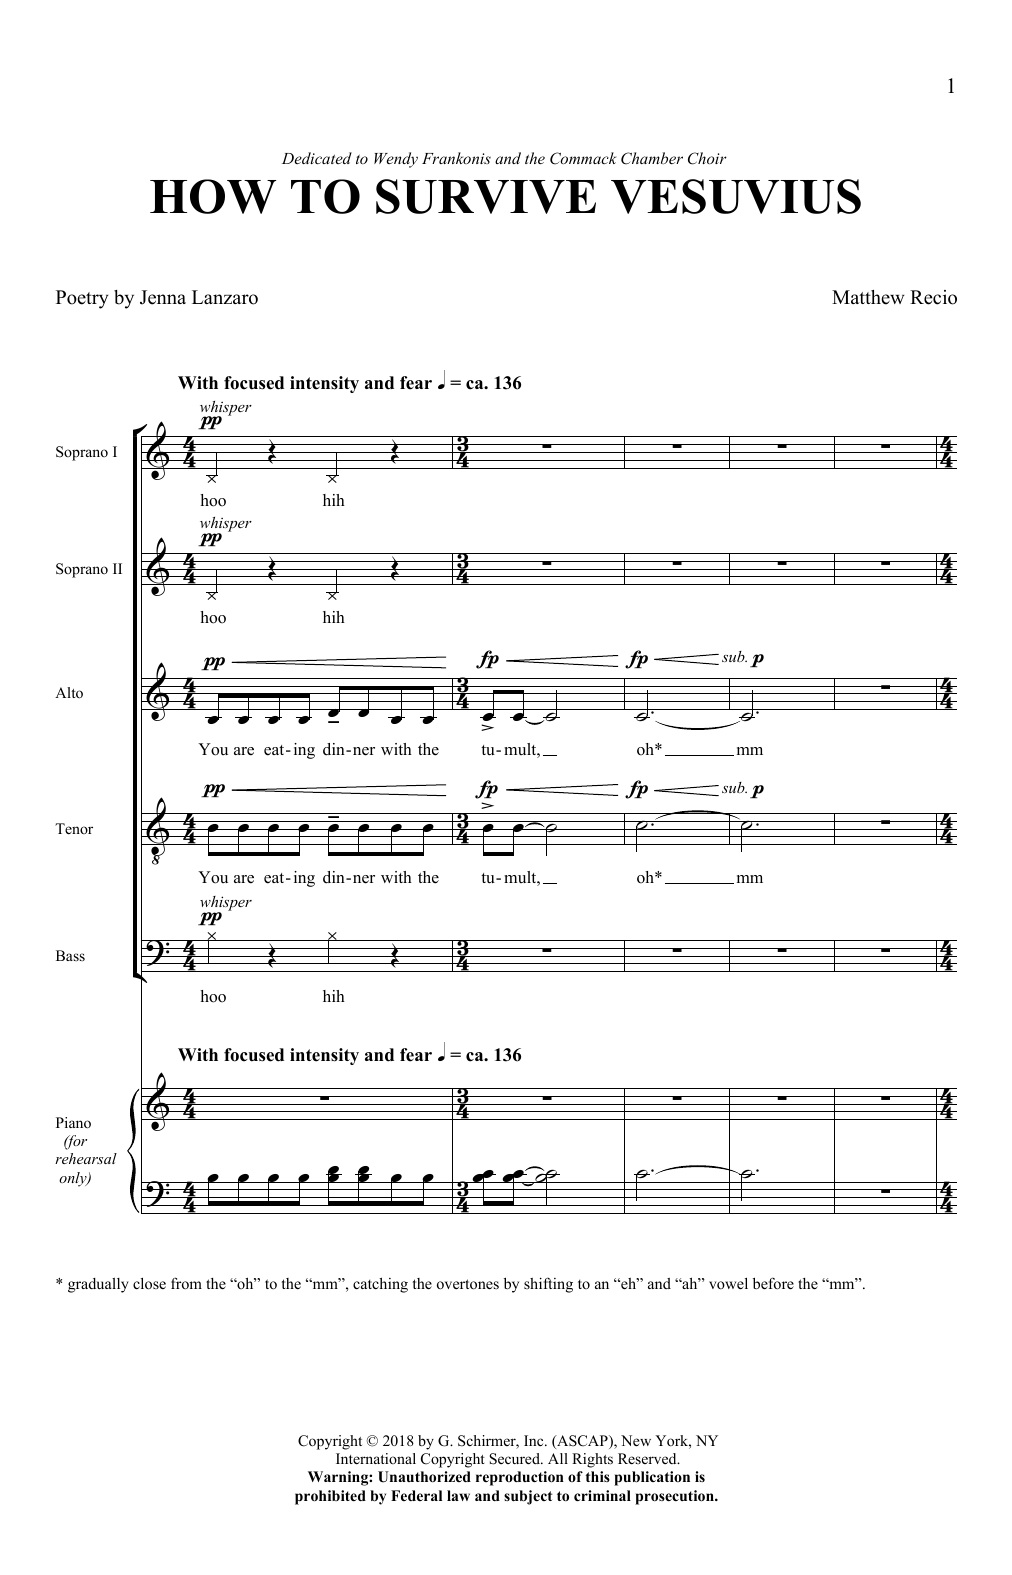 How To Survive Vesuvius Sheet Music